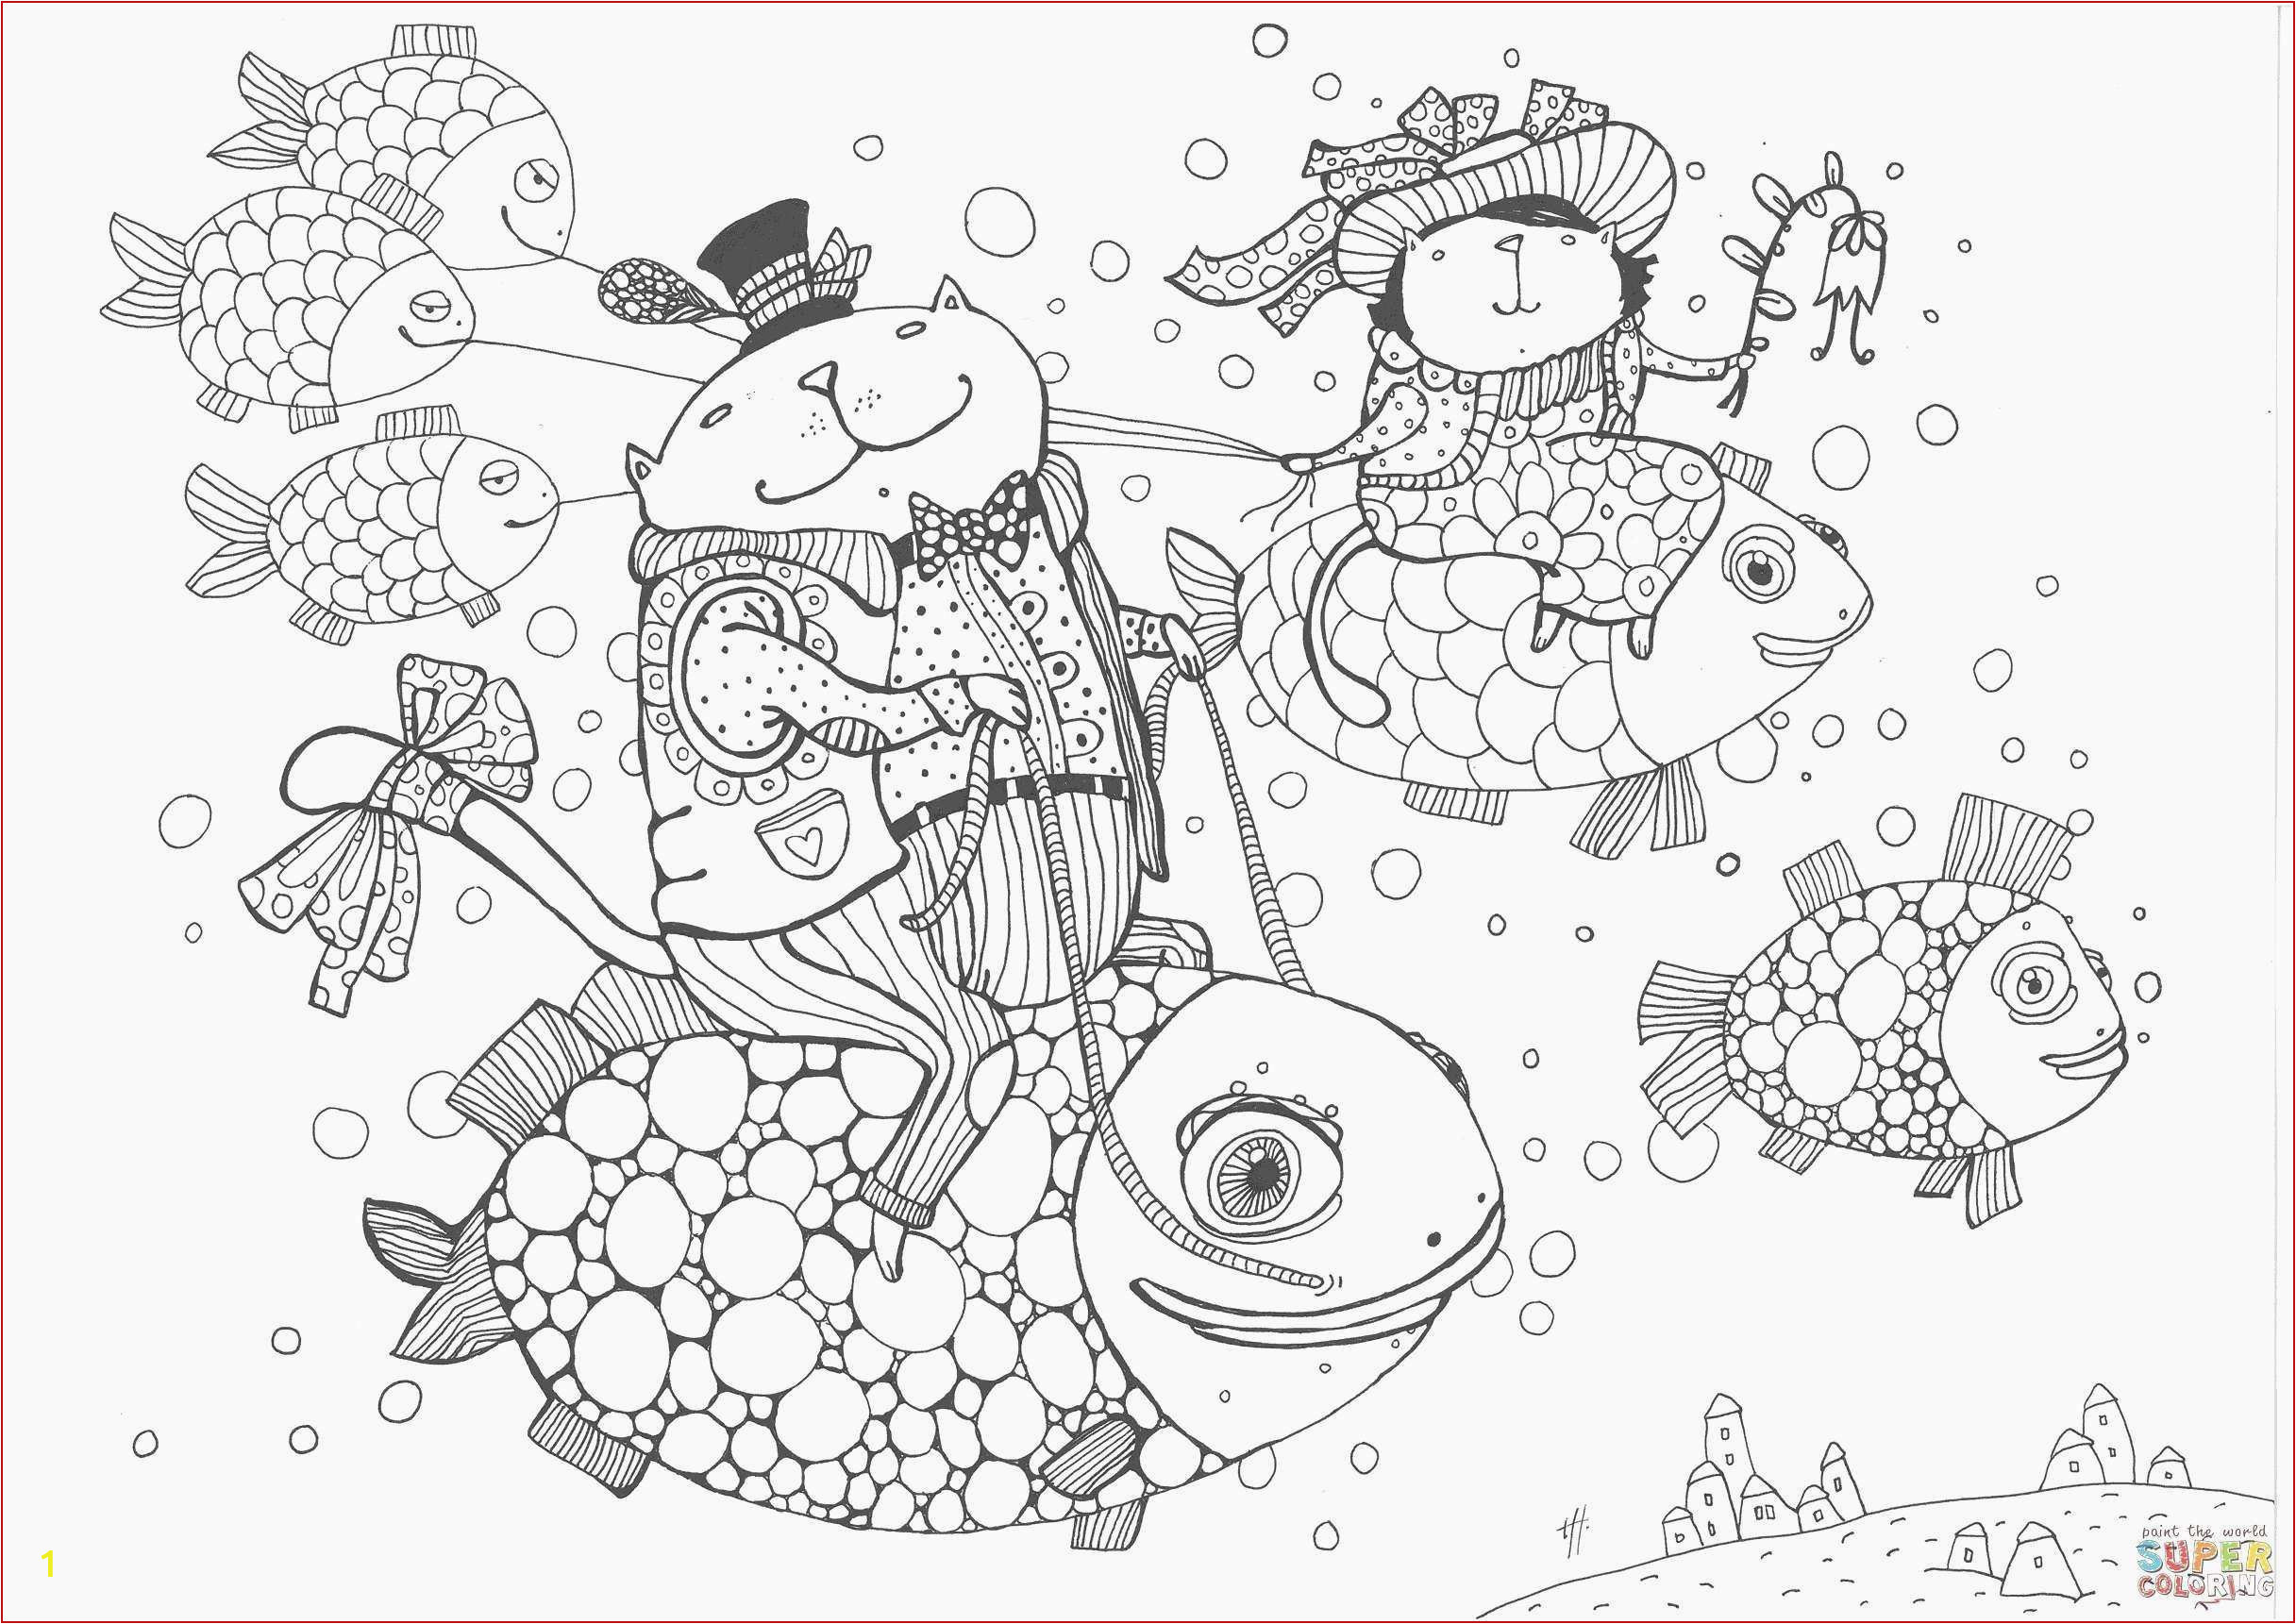 printable coloring pages frozen adult holiday dr seuss sheets creative book klara markova books invisible ink you can color on the puter for adults princess ariel